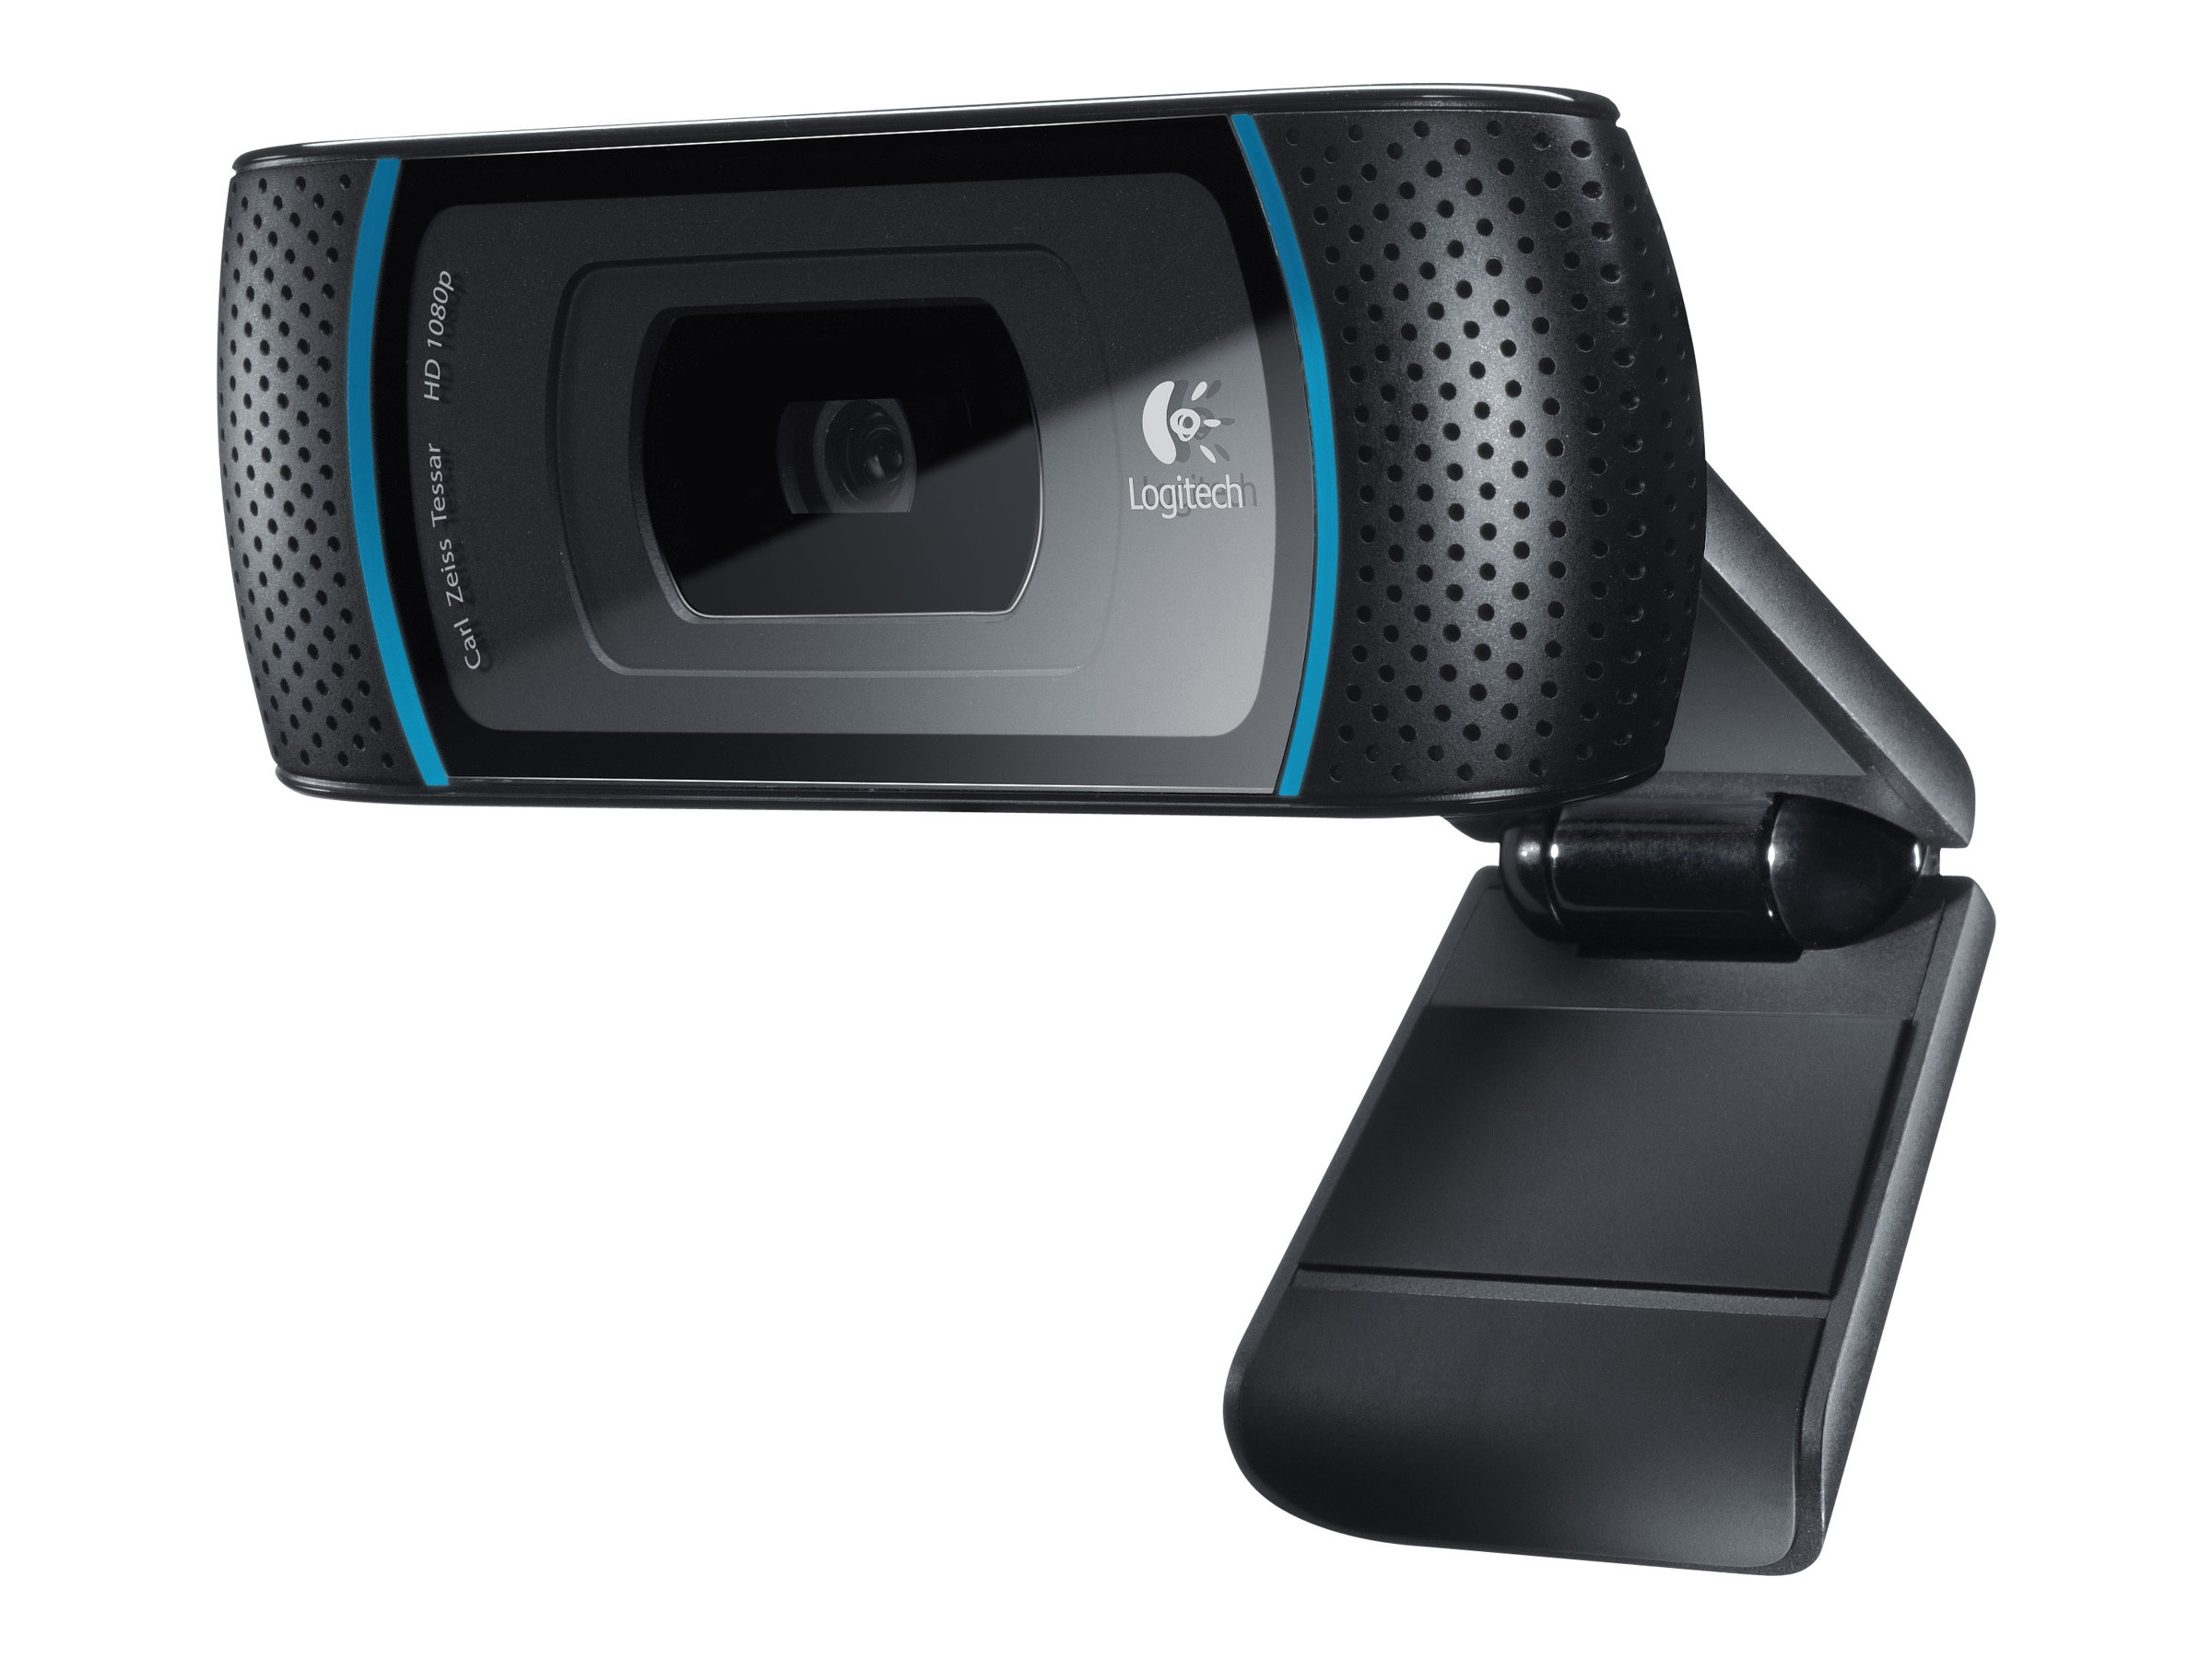 Logitech B910 HD Webcam - Web-Kamera - Farbe - 5 MP - 1280 x 720 - Audio